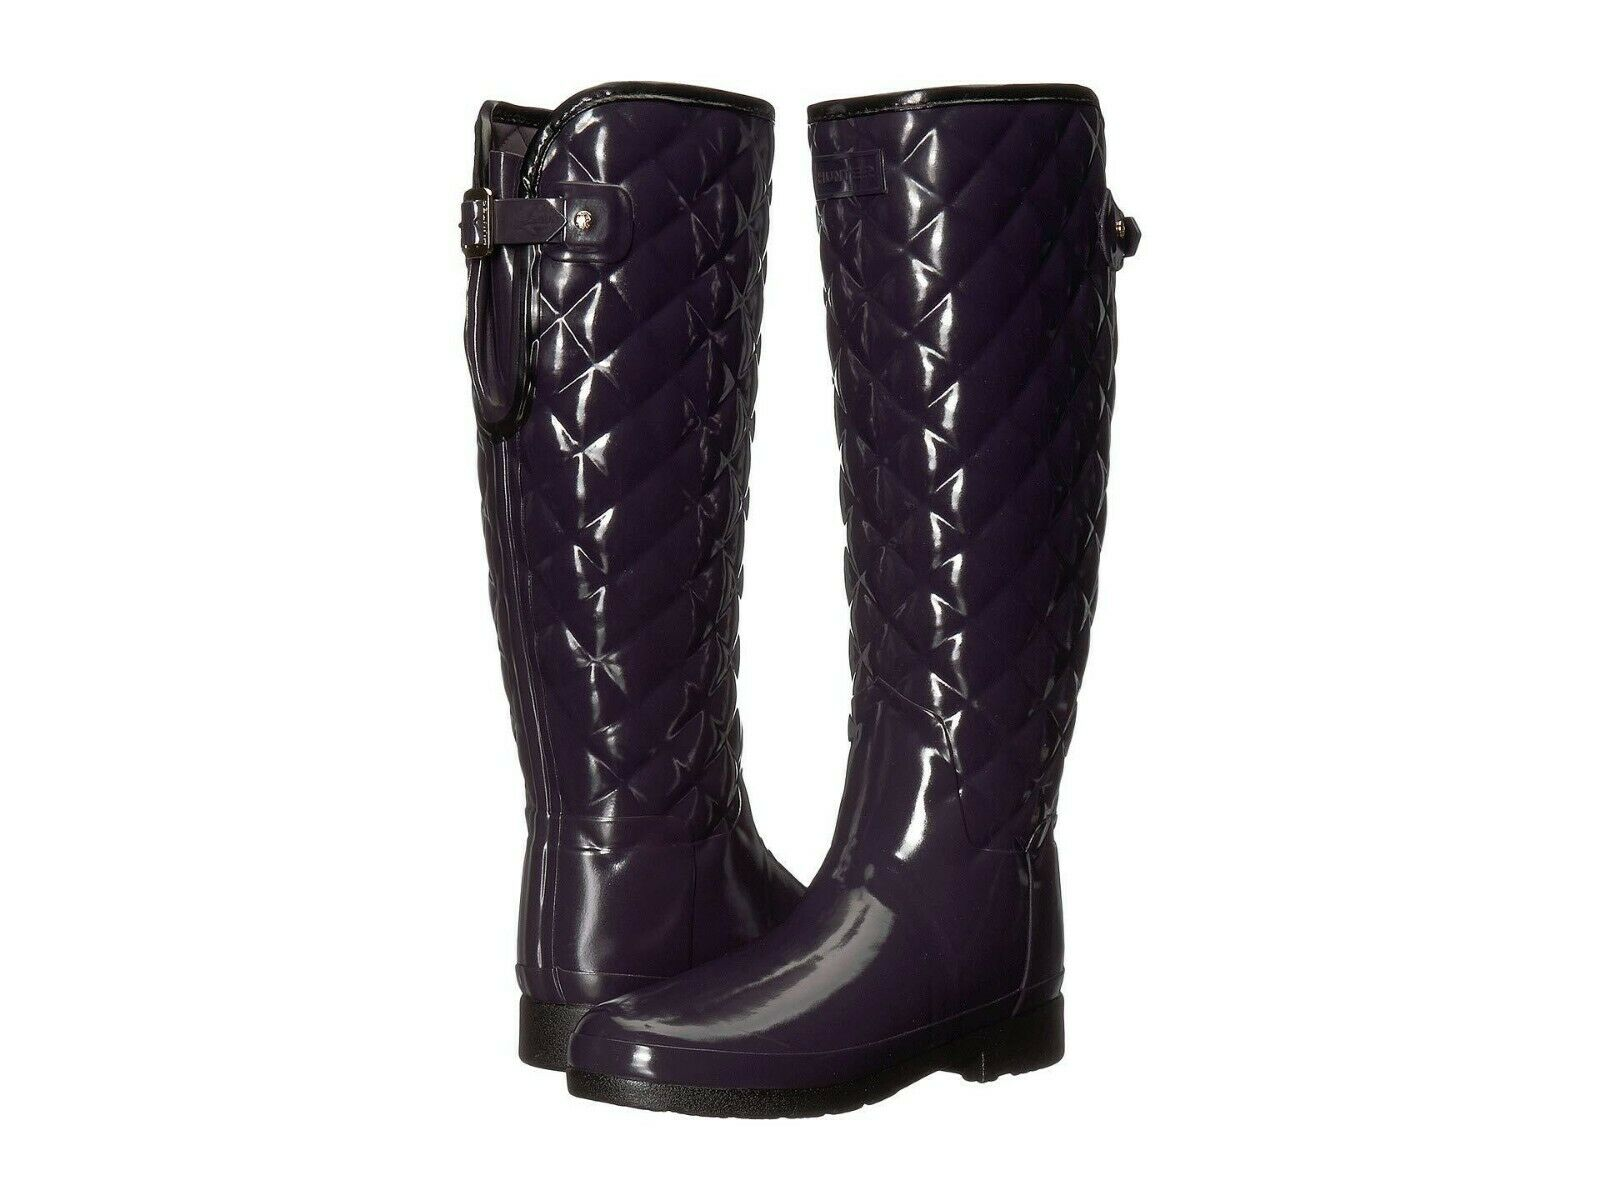 HUNTER REFINED QUILTED GLOSS TALL ALL SEASON BOOTS AUBERGINE SZ 8 NIB